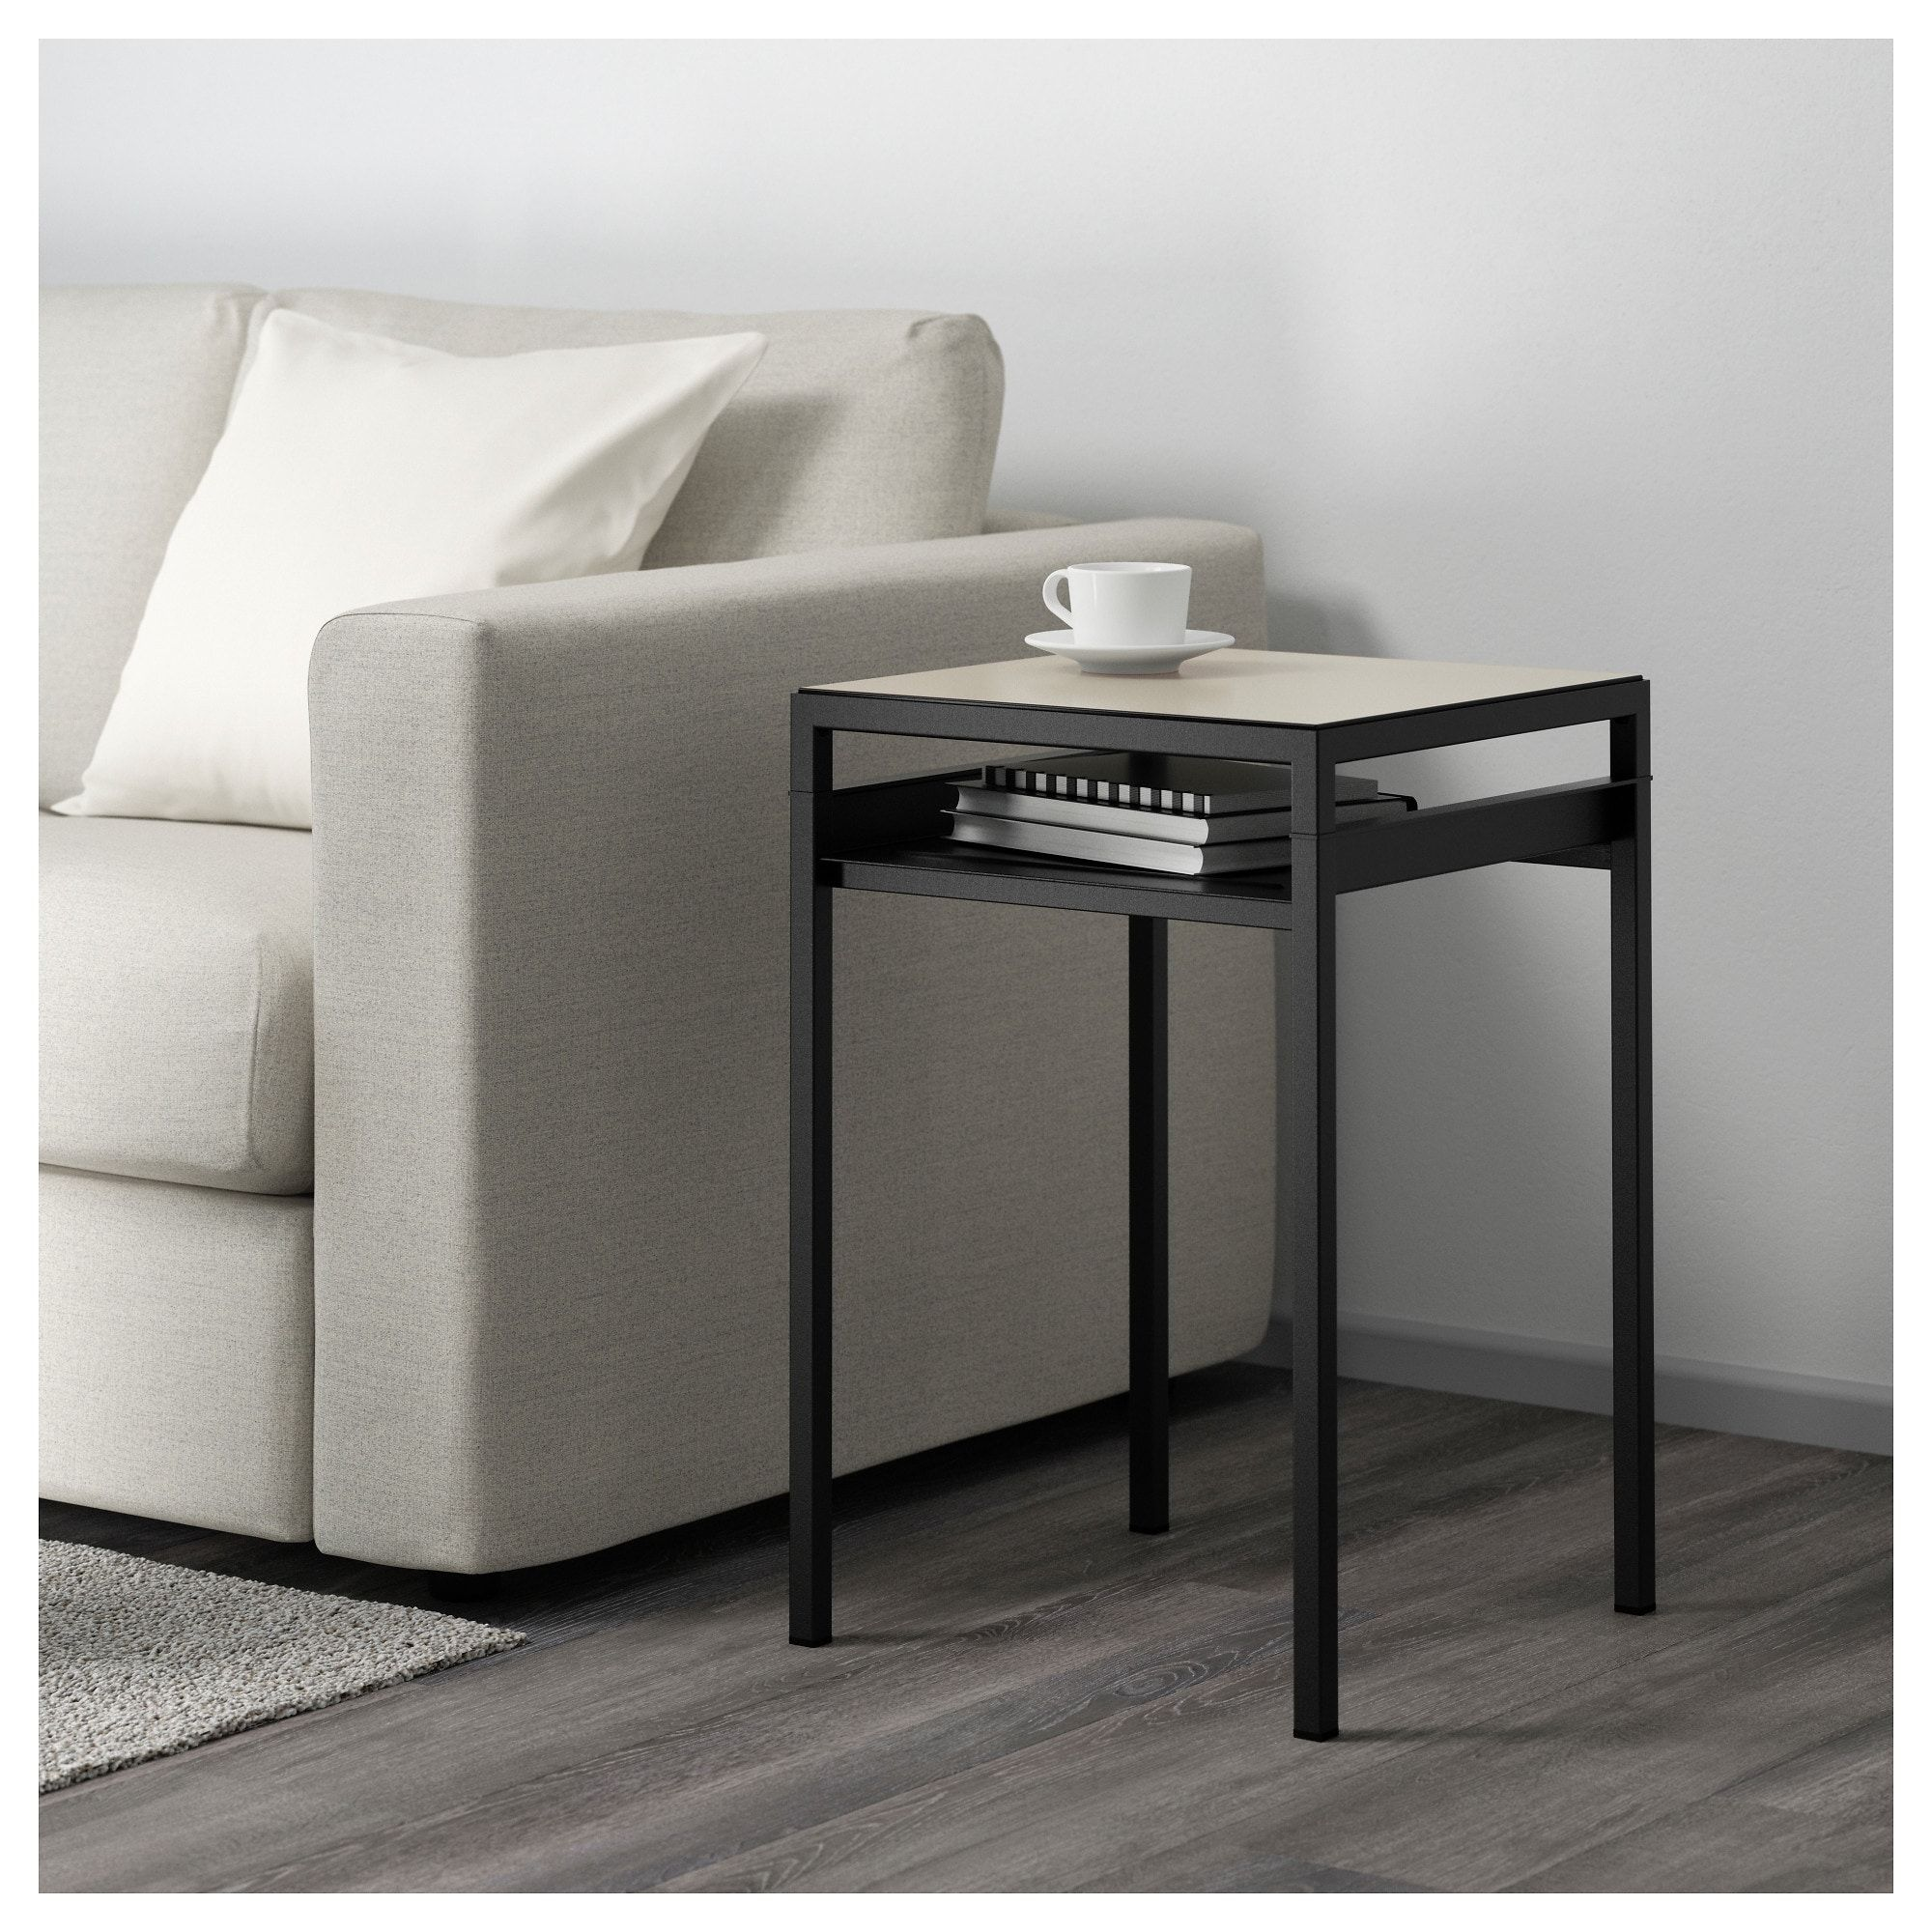 Home Outdoor Furniture Affordable Well Designed Side Table At Home Furniture Store Ikea [ 2000 x 2000 Pixel ]